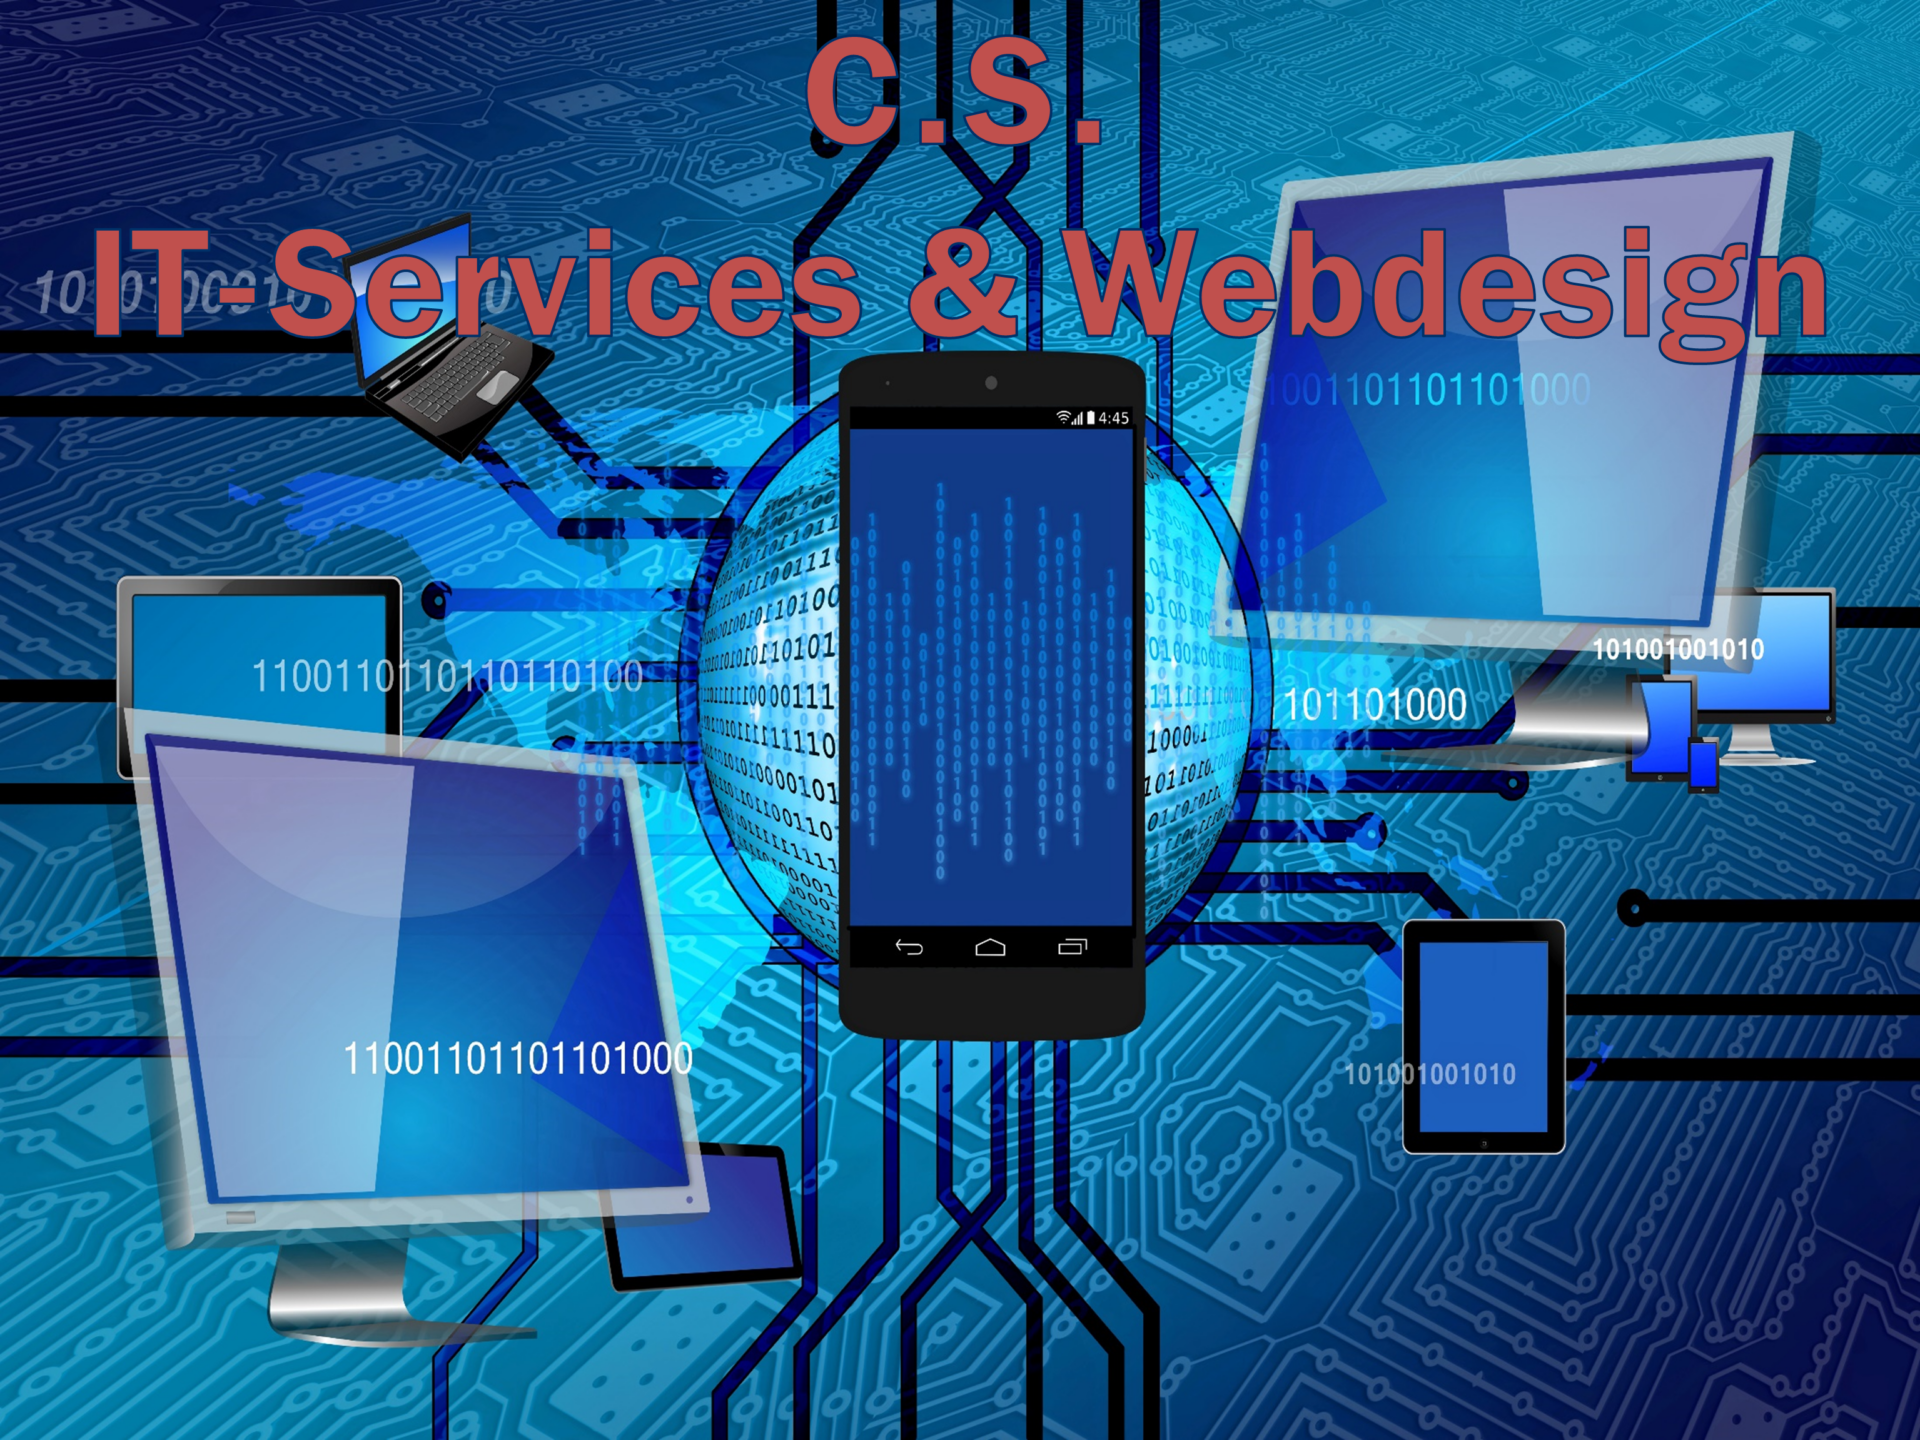 C.S. IT-Services & Webdesign